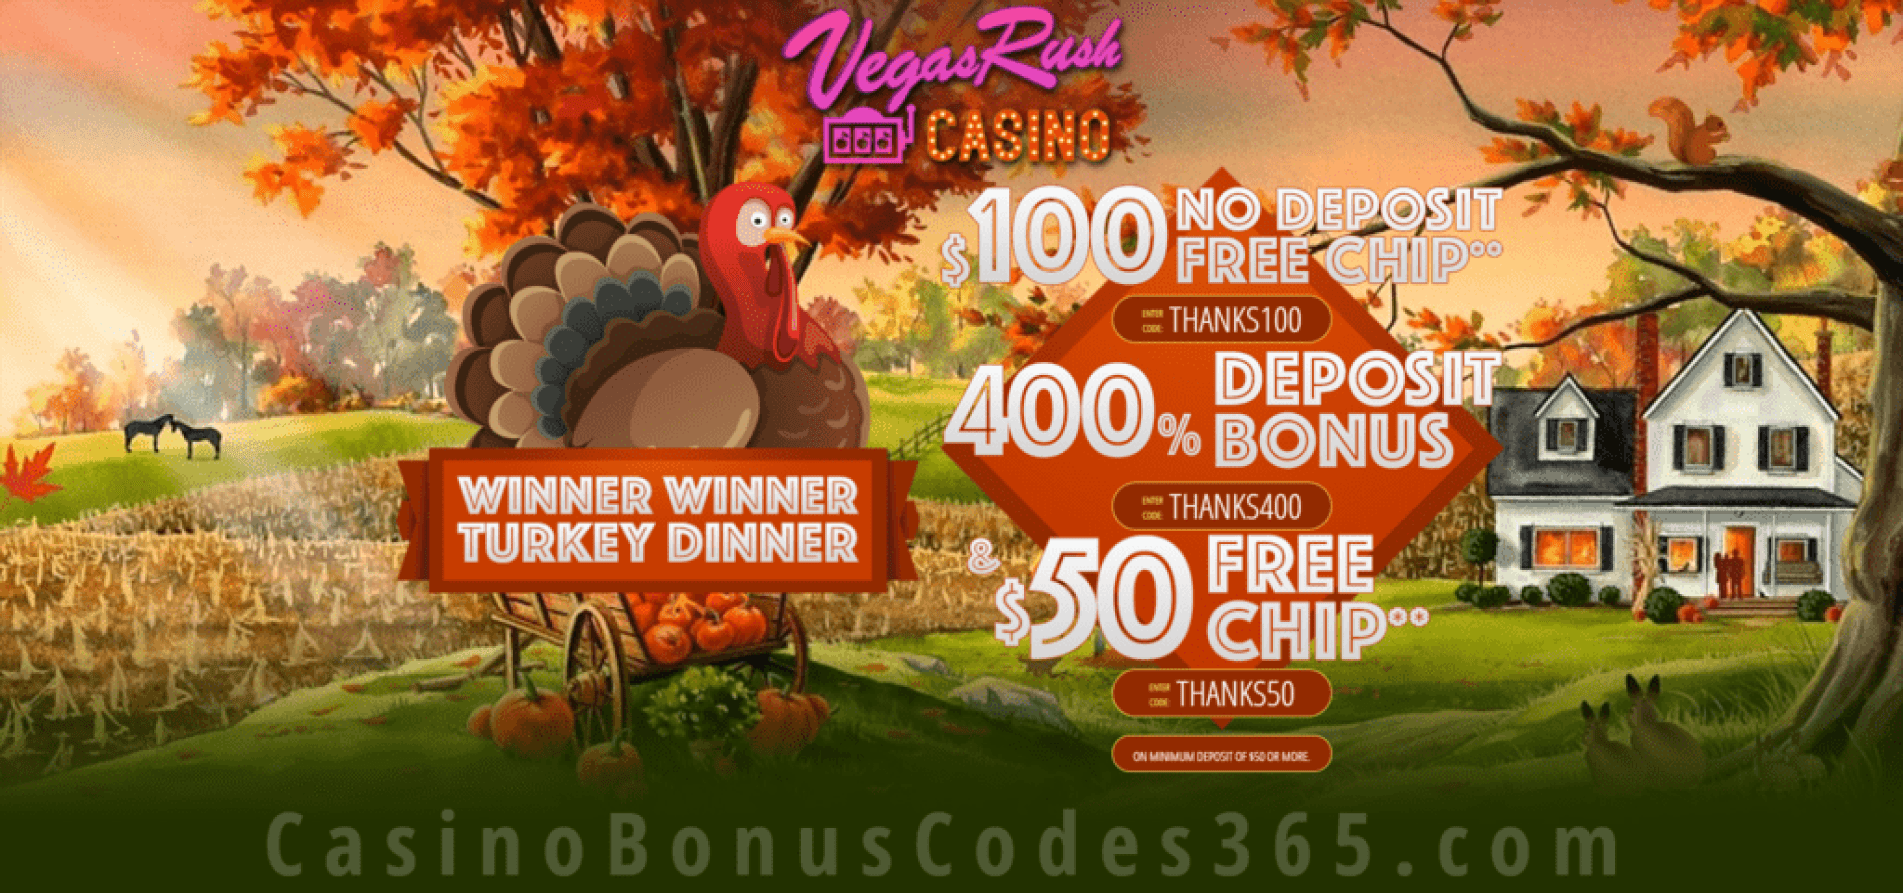 Vegas Rush Casino Thanksgiving November Special Deal